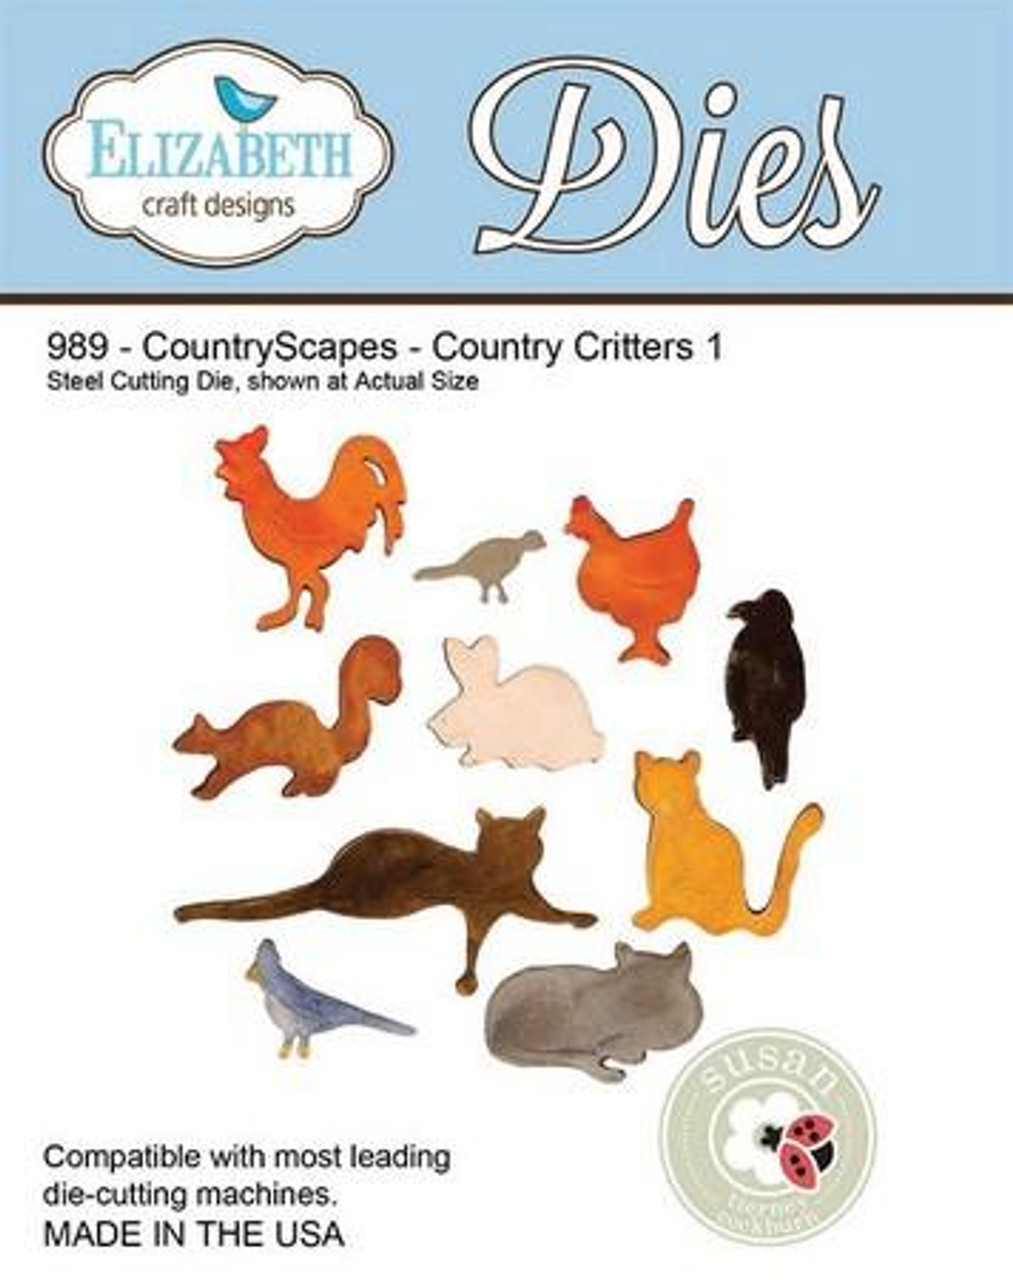 Elizabeth Craft Designs - CountryScapes - Country Critters 1